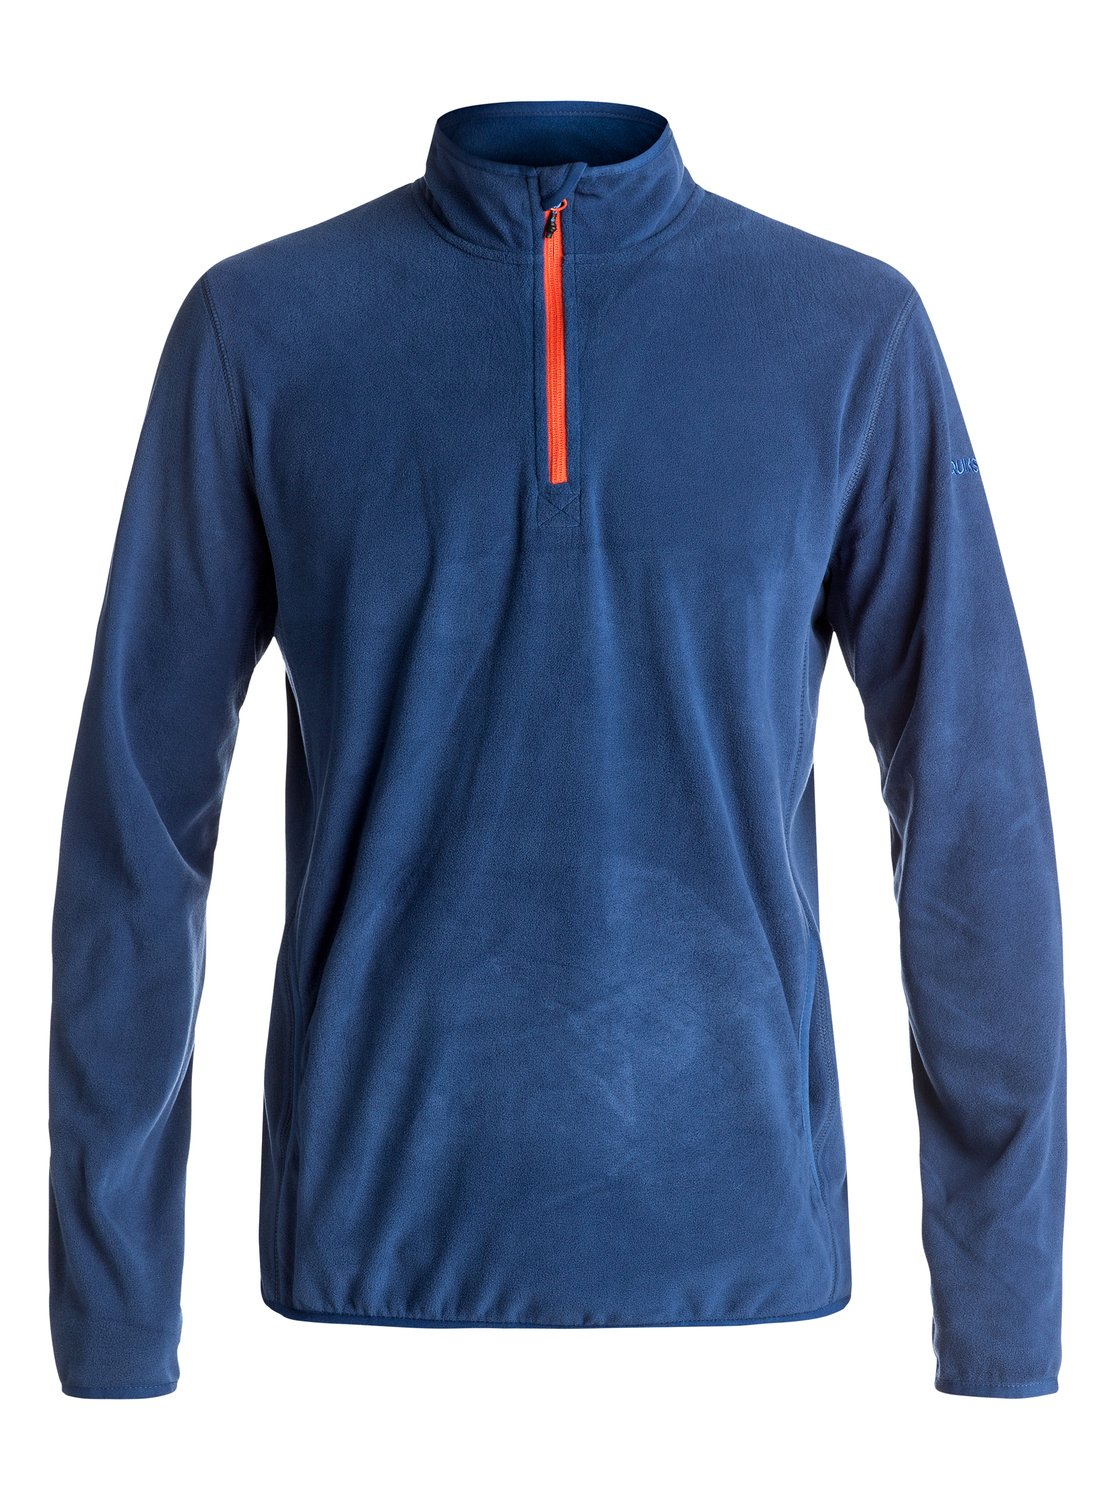 Aker - Half-Zip Technical Fleece<br>